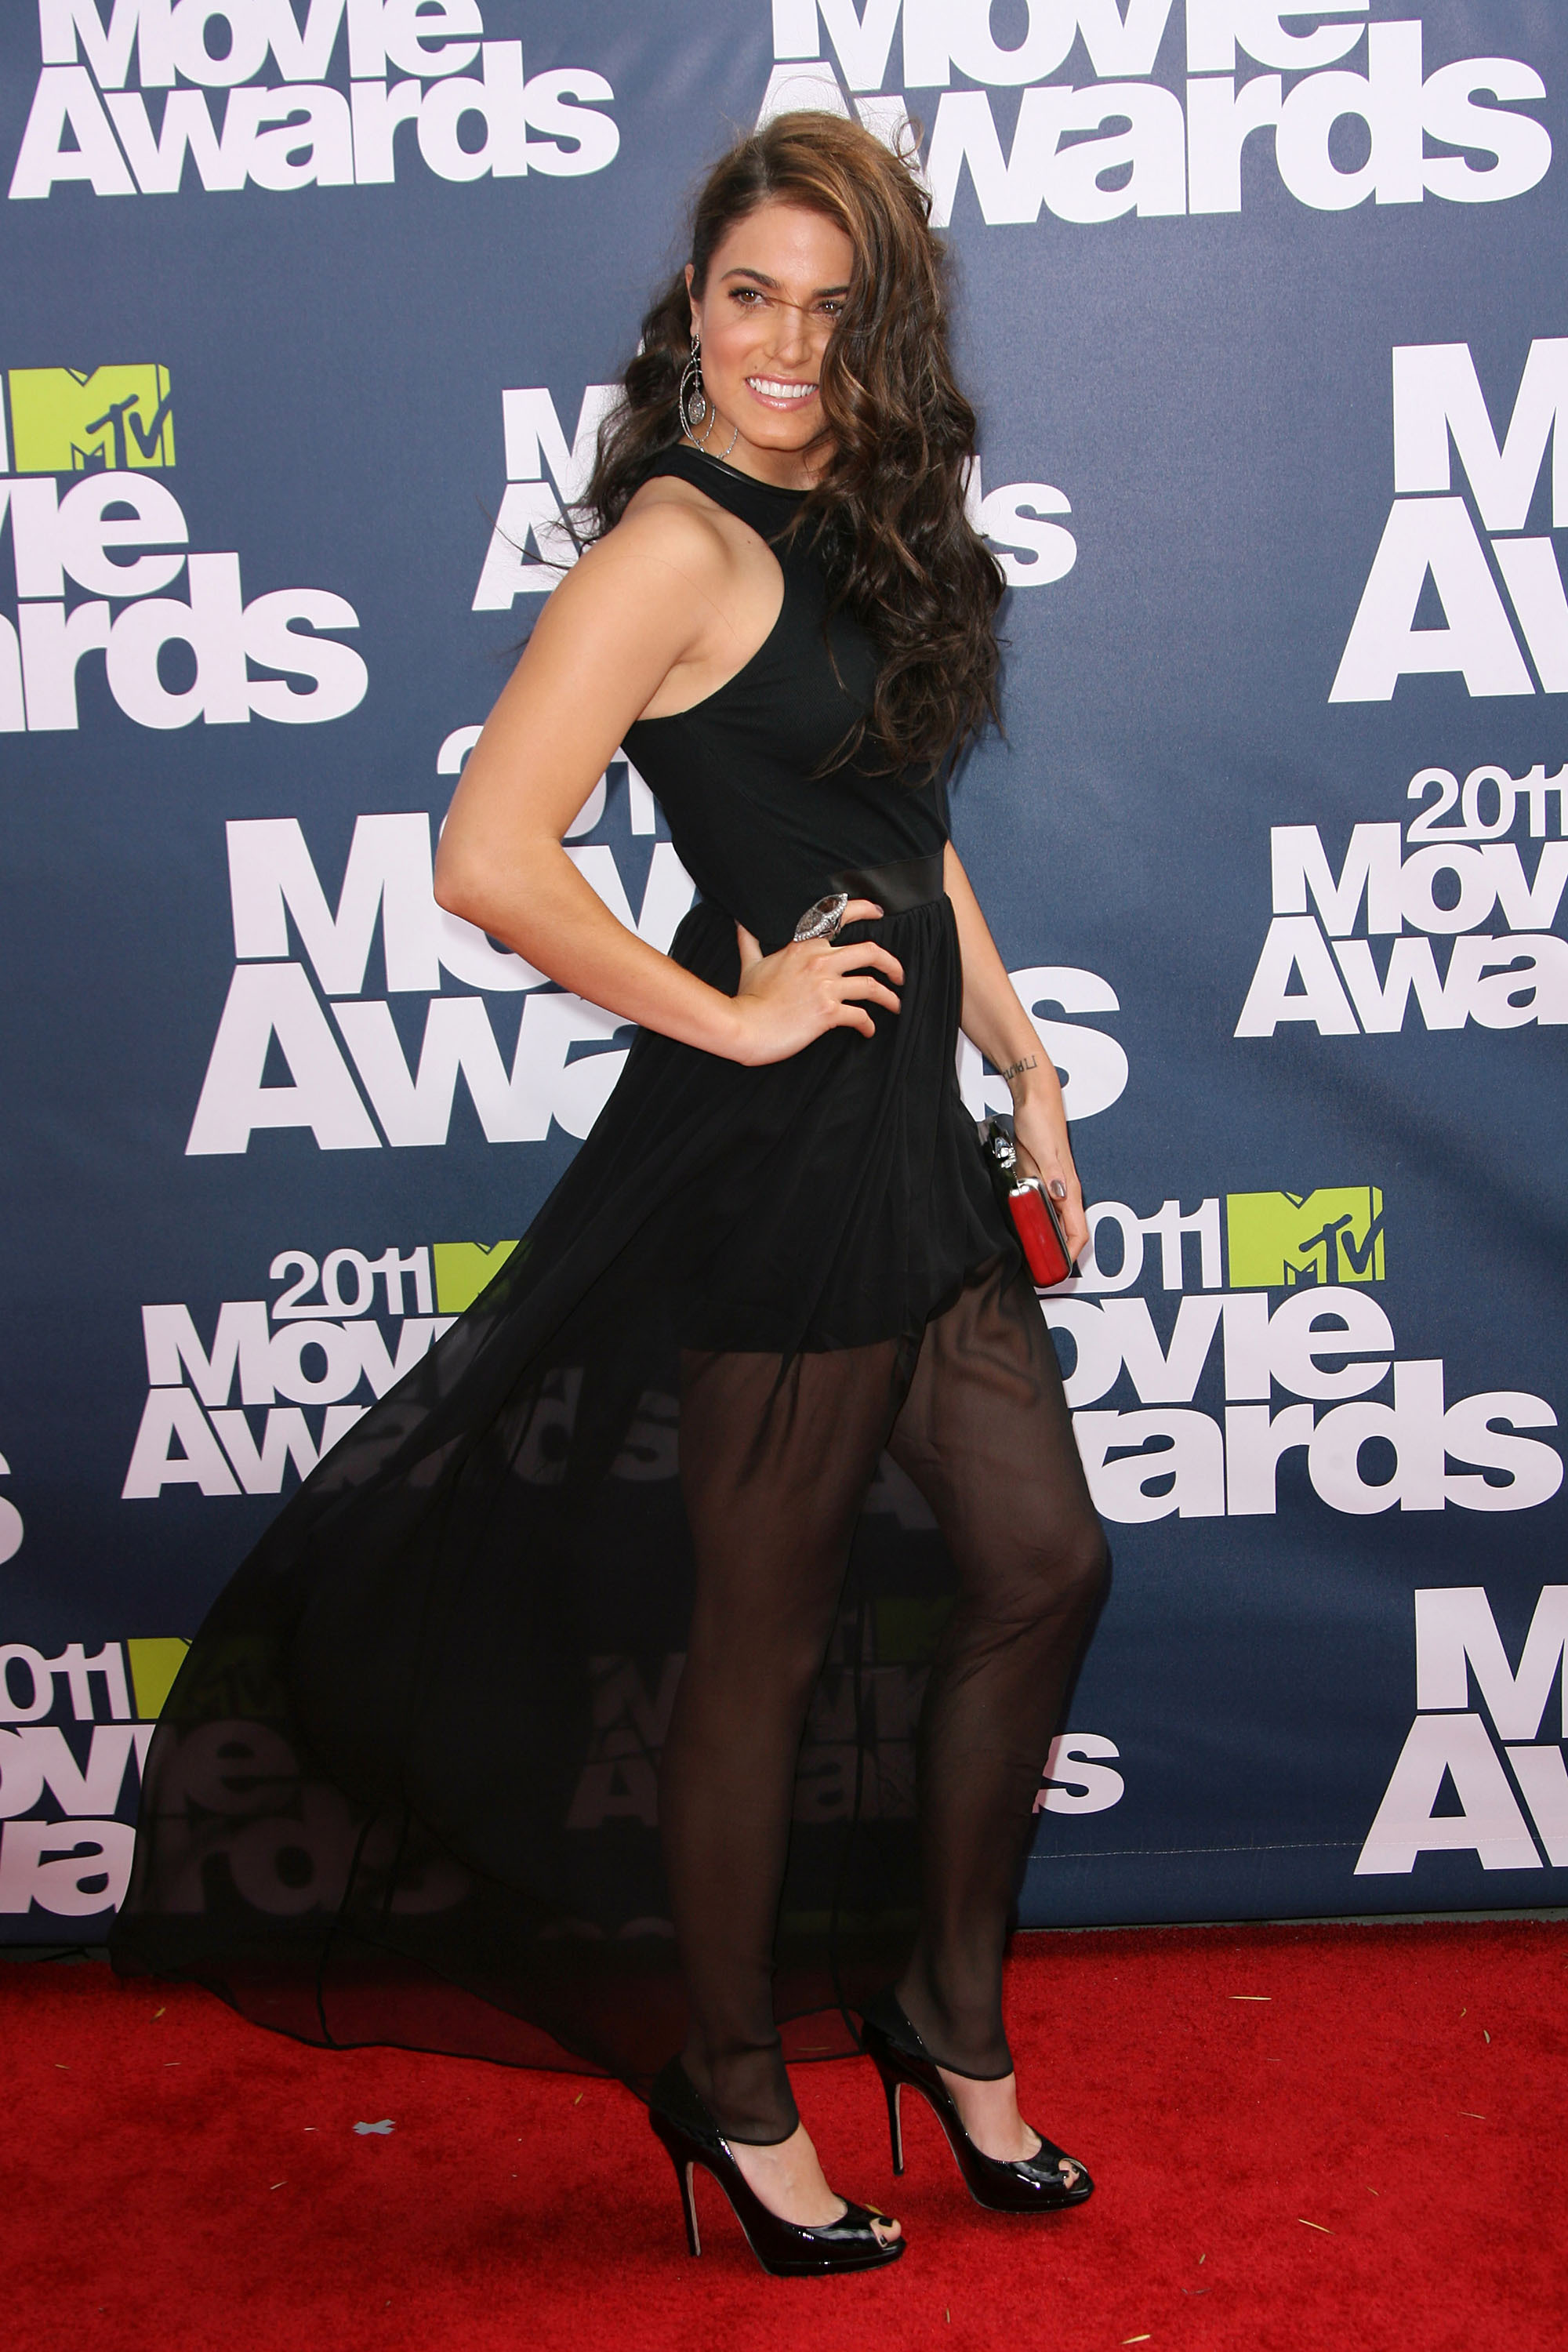 Nikki Reed's MTV Movie Awards style